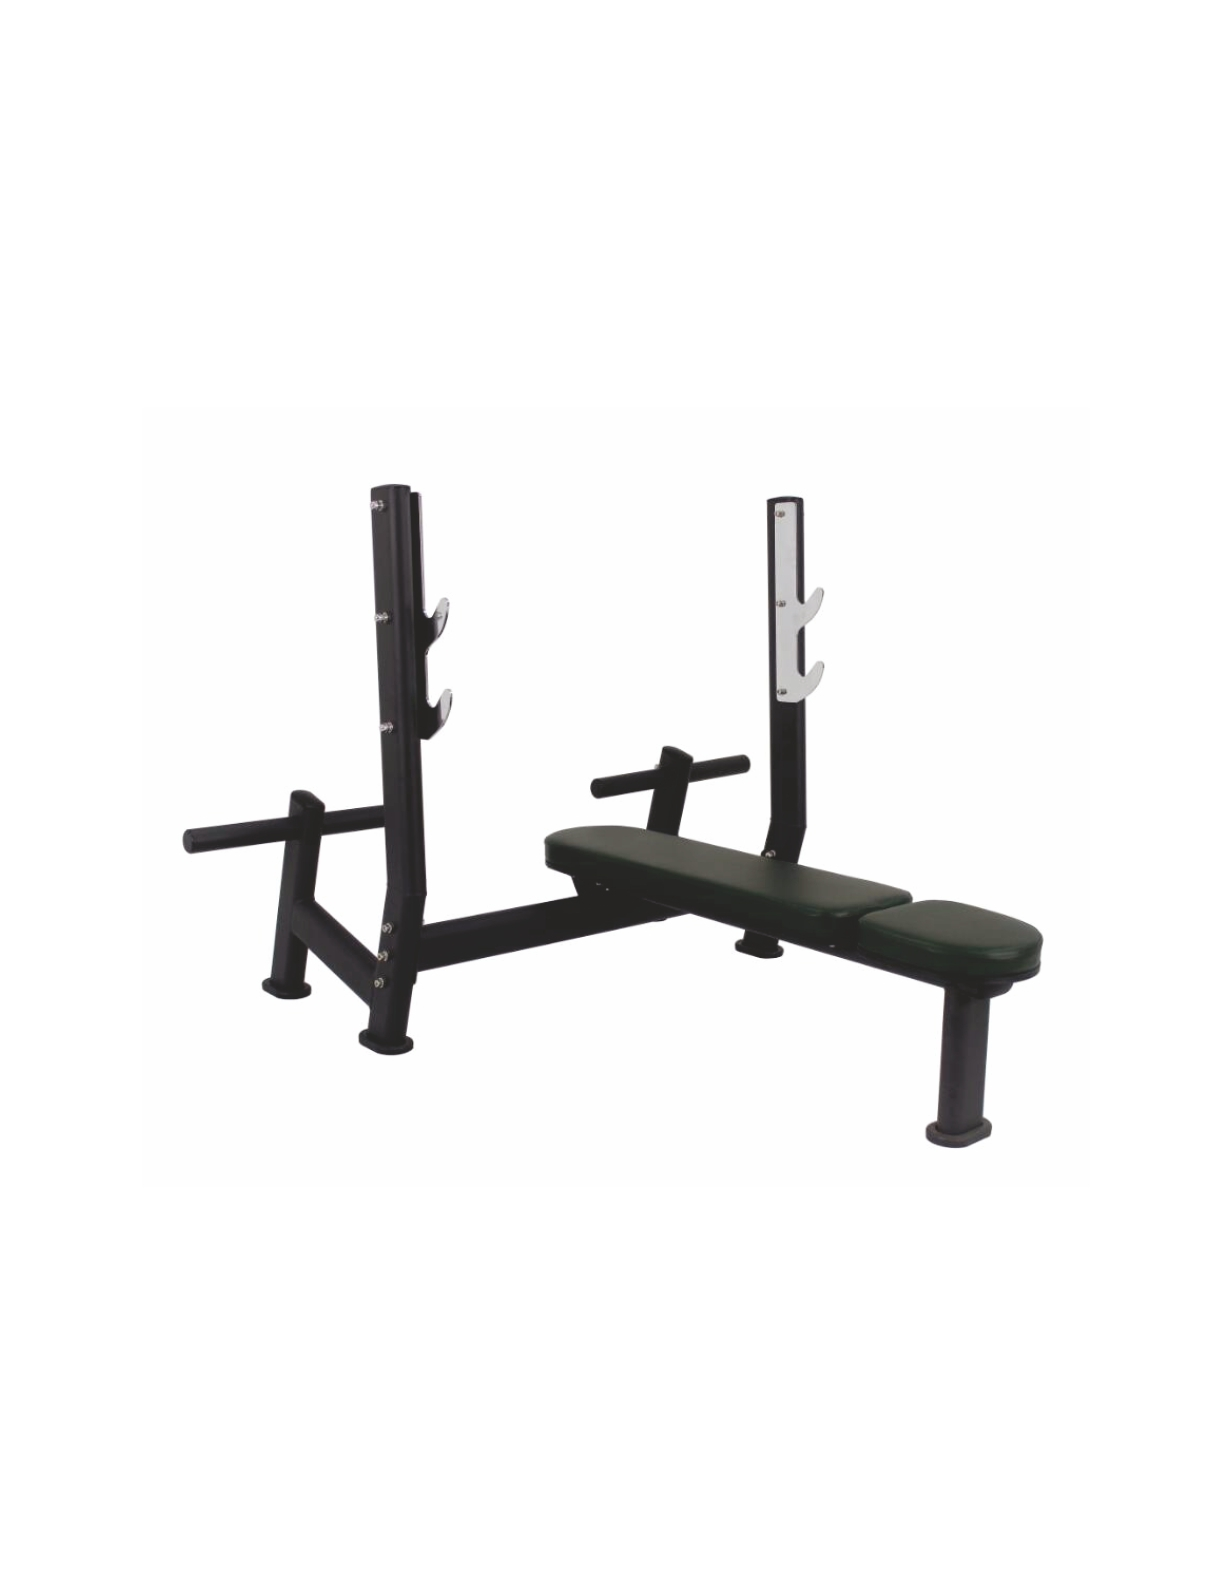 WT3052 OLYMPIC FLAT BENCH